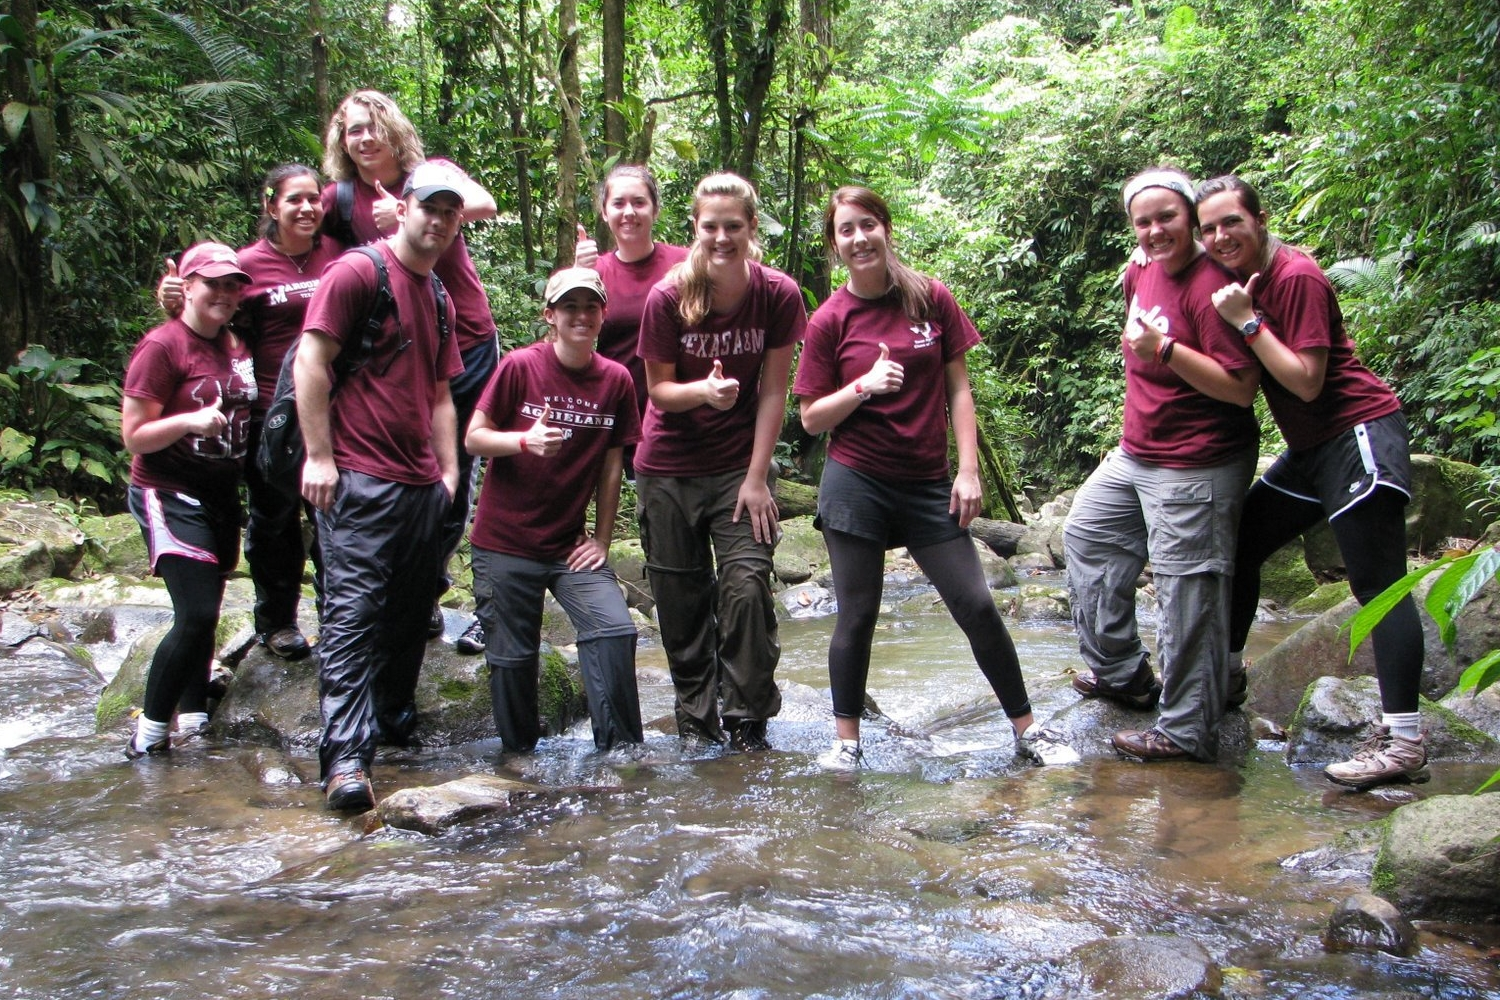 Students posing for a photo in a river in Costa Rica